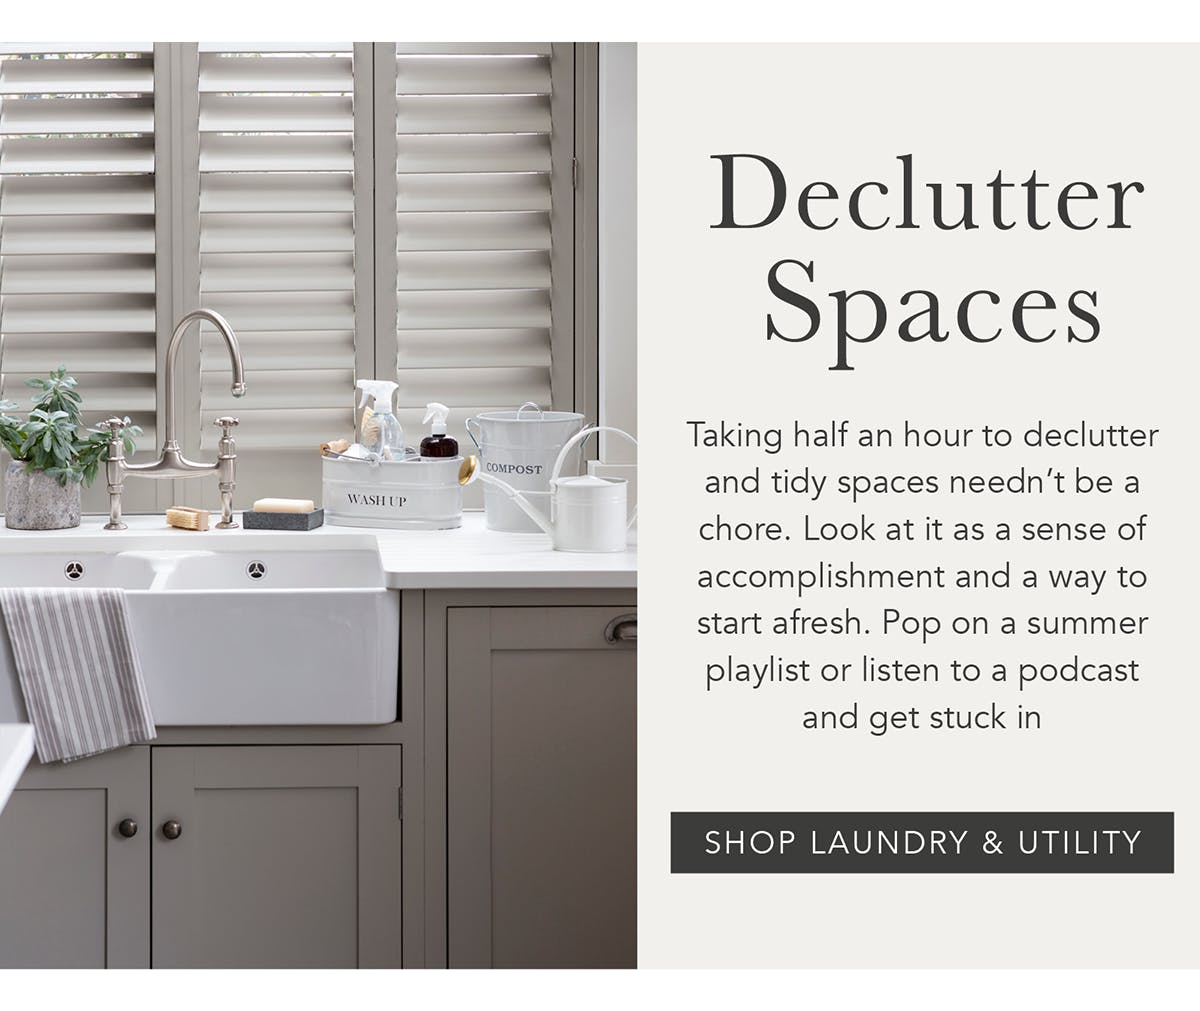 Declutter Spaces